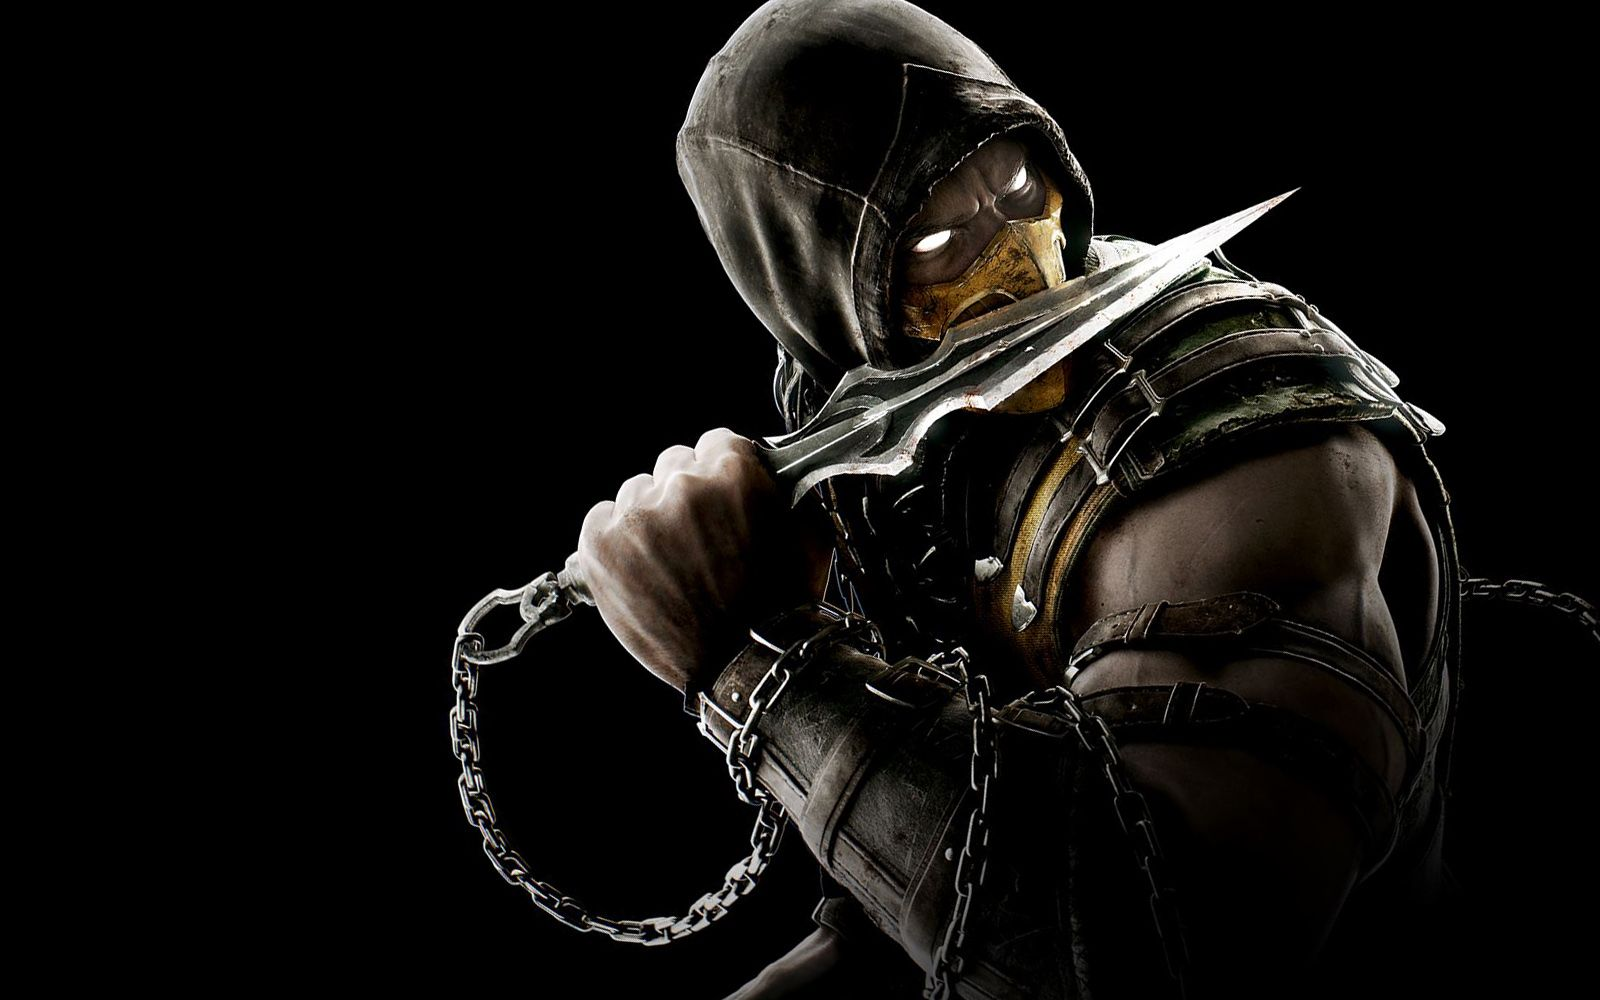 Scorpion Mortal Kombat X Wallpapers 57 Wallpapers Hd